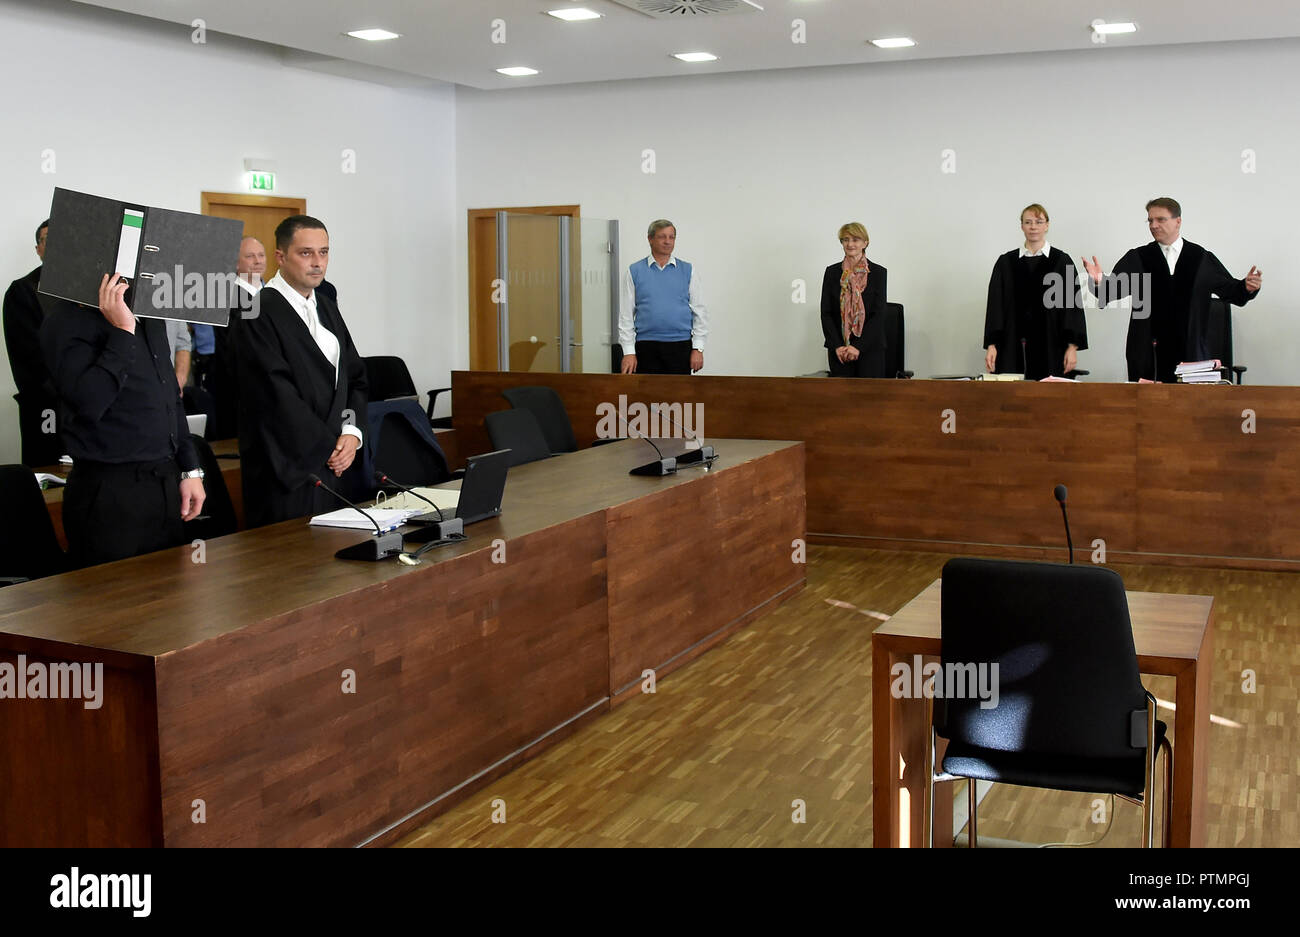 Potsdam, Brandenburg. 10th Oct, 2018. Klaus W. Feldmann (r), presiding judge at the Regional Court, opens the appeal of two defendants against an arson attack on a gymnasium in Nauen, which was to serve as refugee accommodation. One of the defendants (l) had lodged an appeal against the amount of the total fine and held a file in front of his face at the beginning of the trial. Credit: Bernd Settnik/dpa-Zentralbild/dpa/Alamy Live News - Stock Image